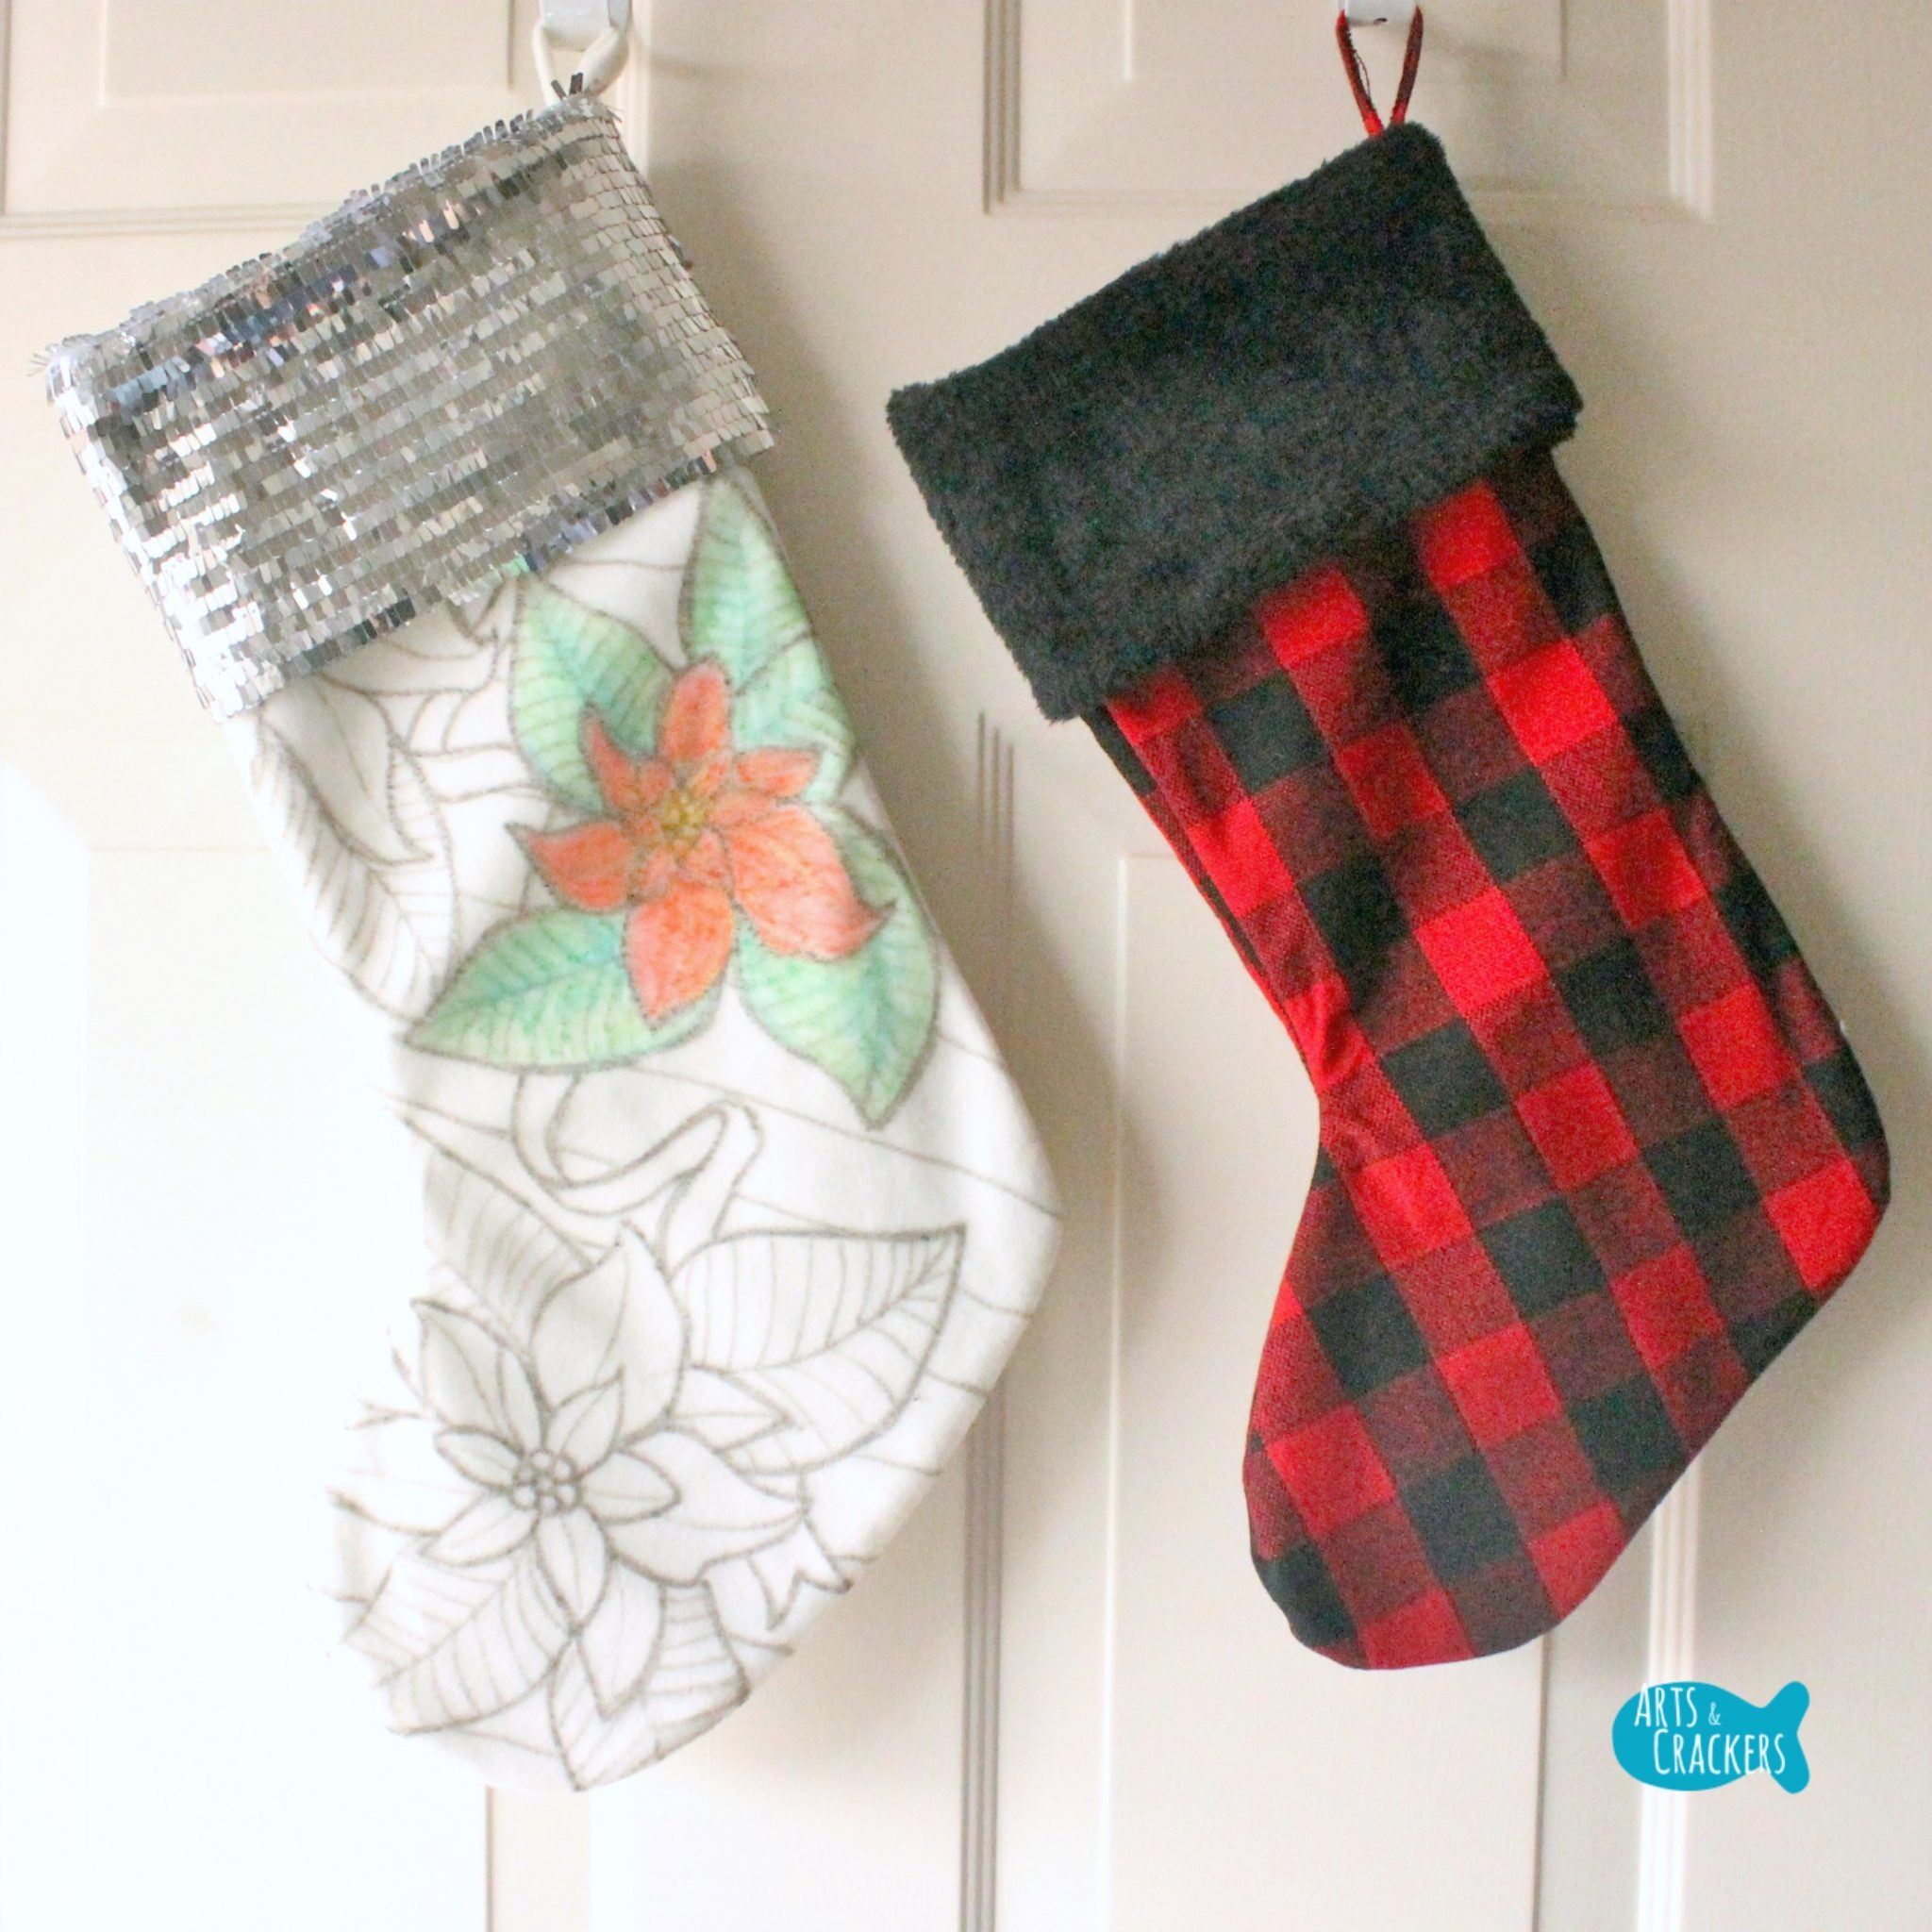 Unconventional stocking stuffer ideas by category page 2 Stocking stuffer ideas 2016